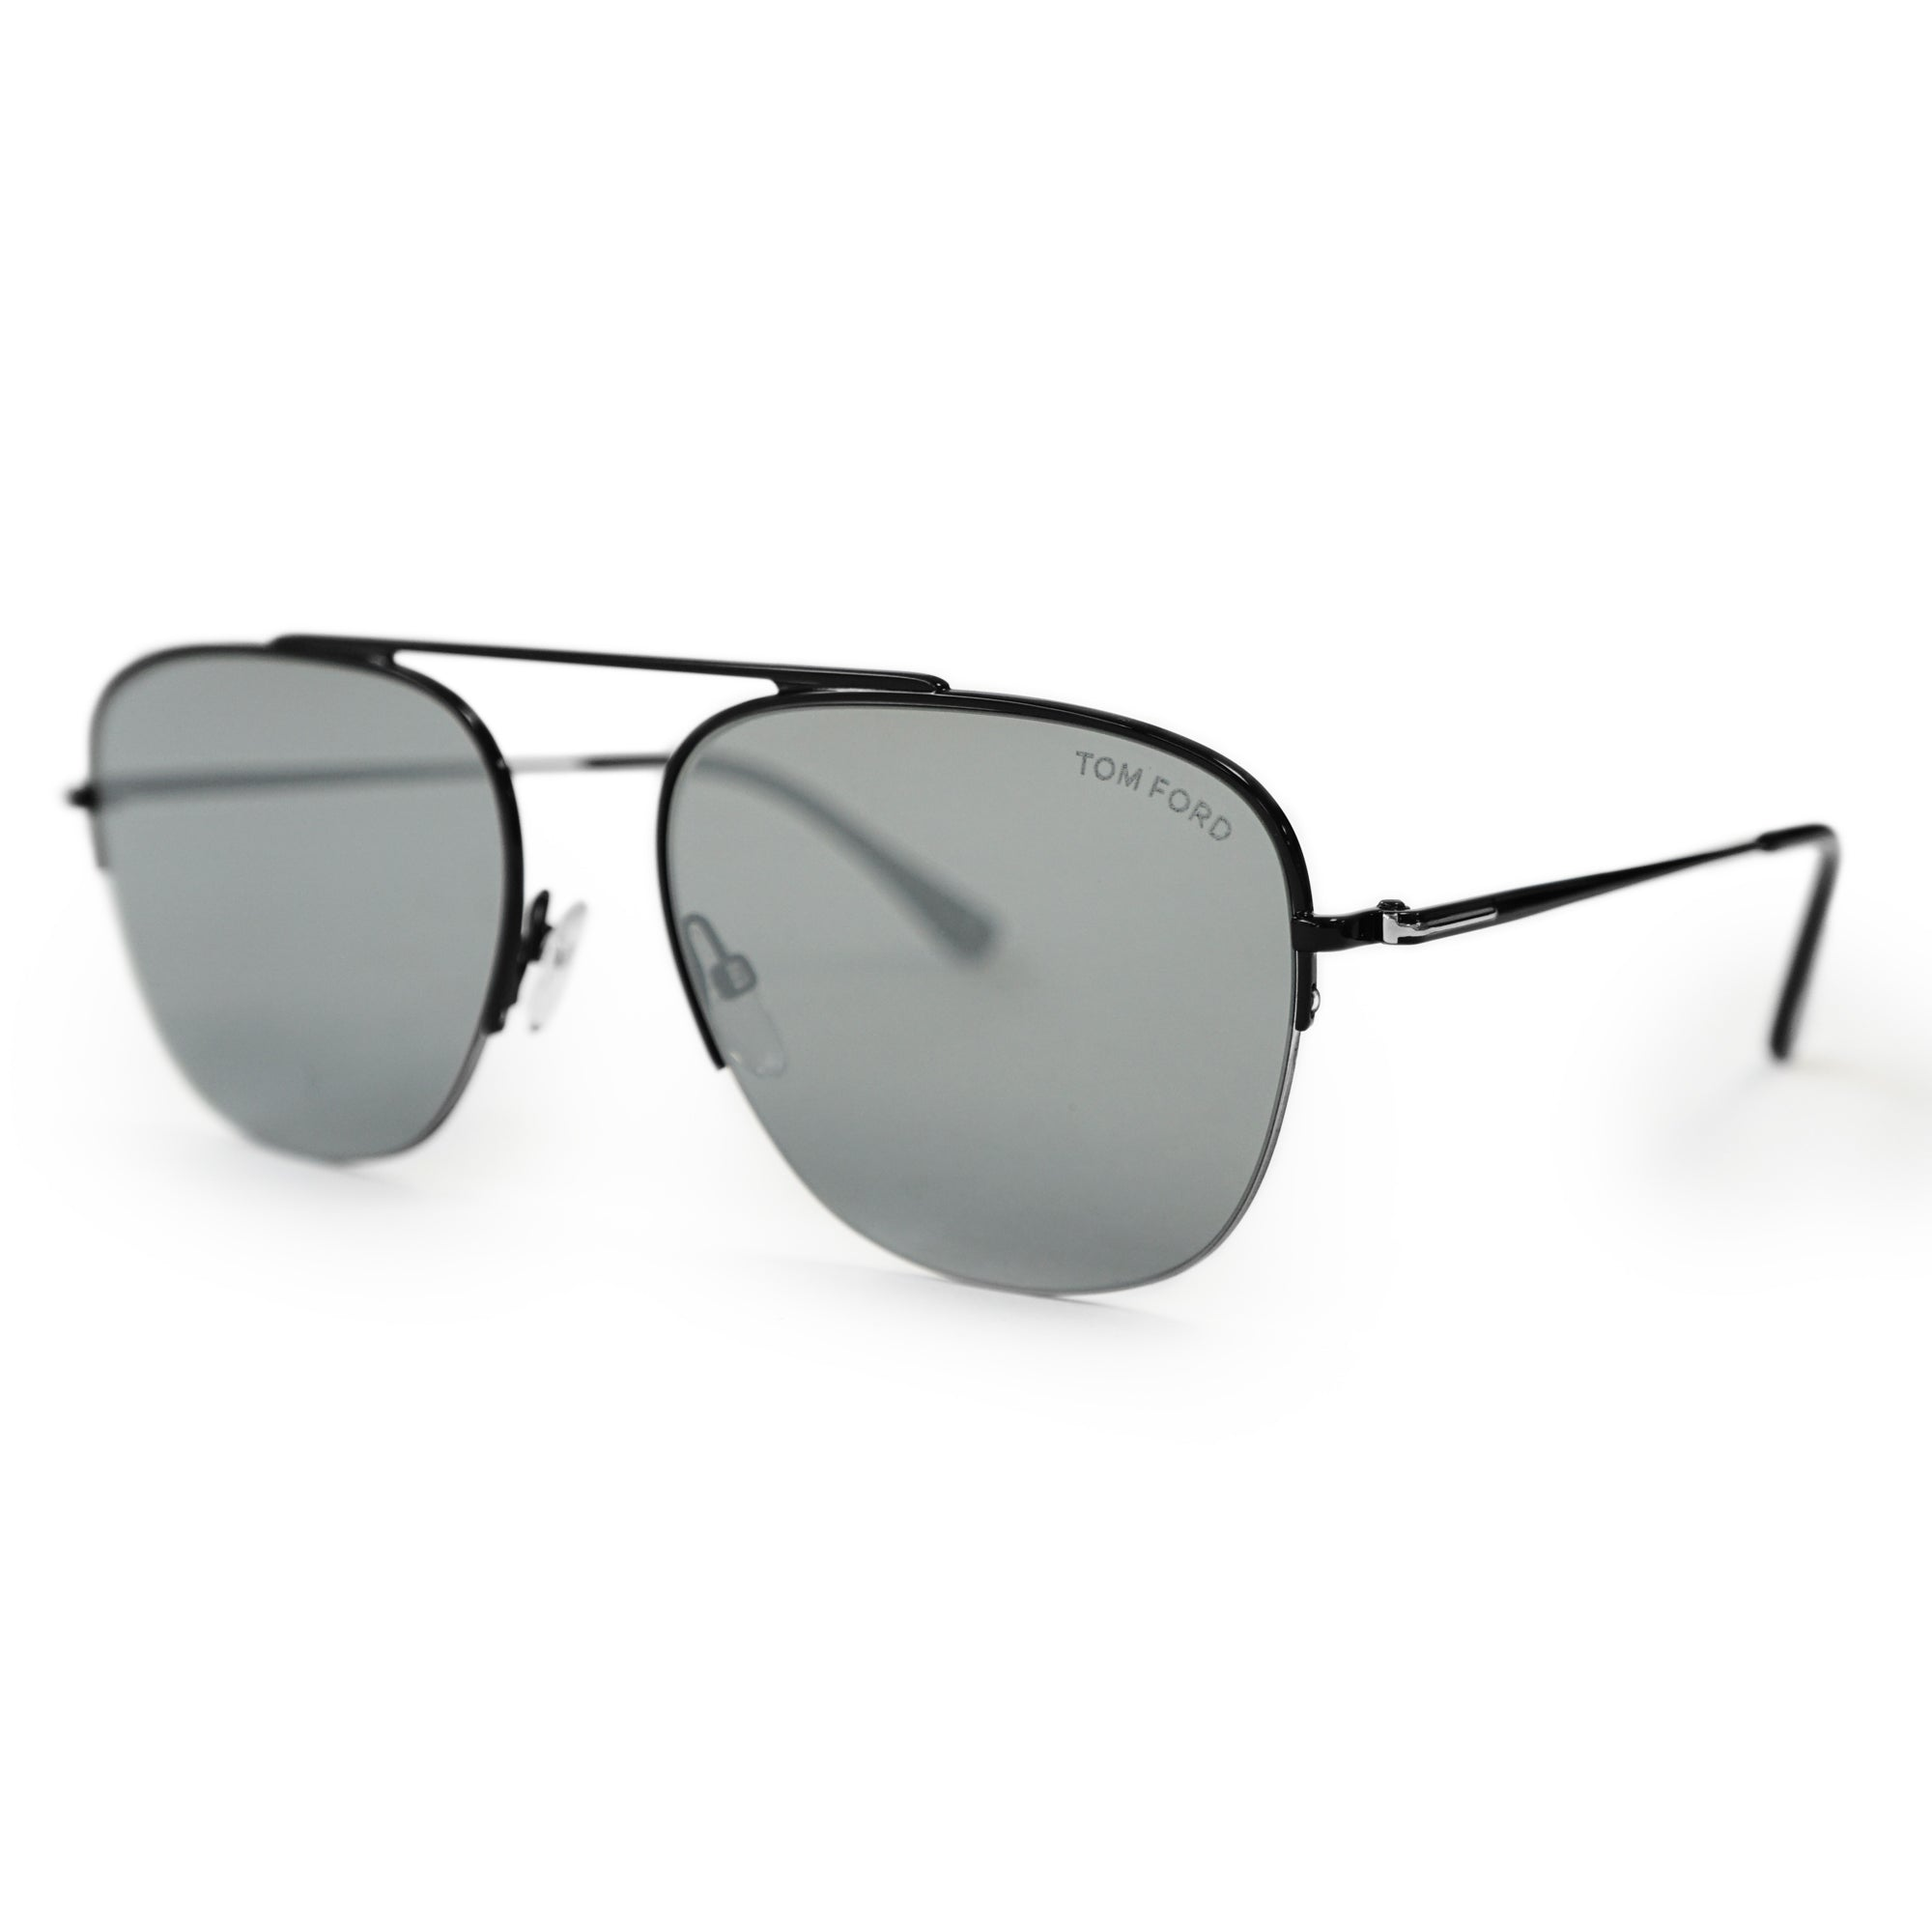 Tom Ford Abott Black Square sunglasses FT0667 01C